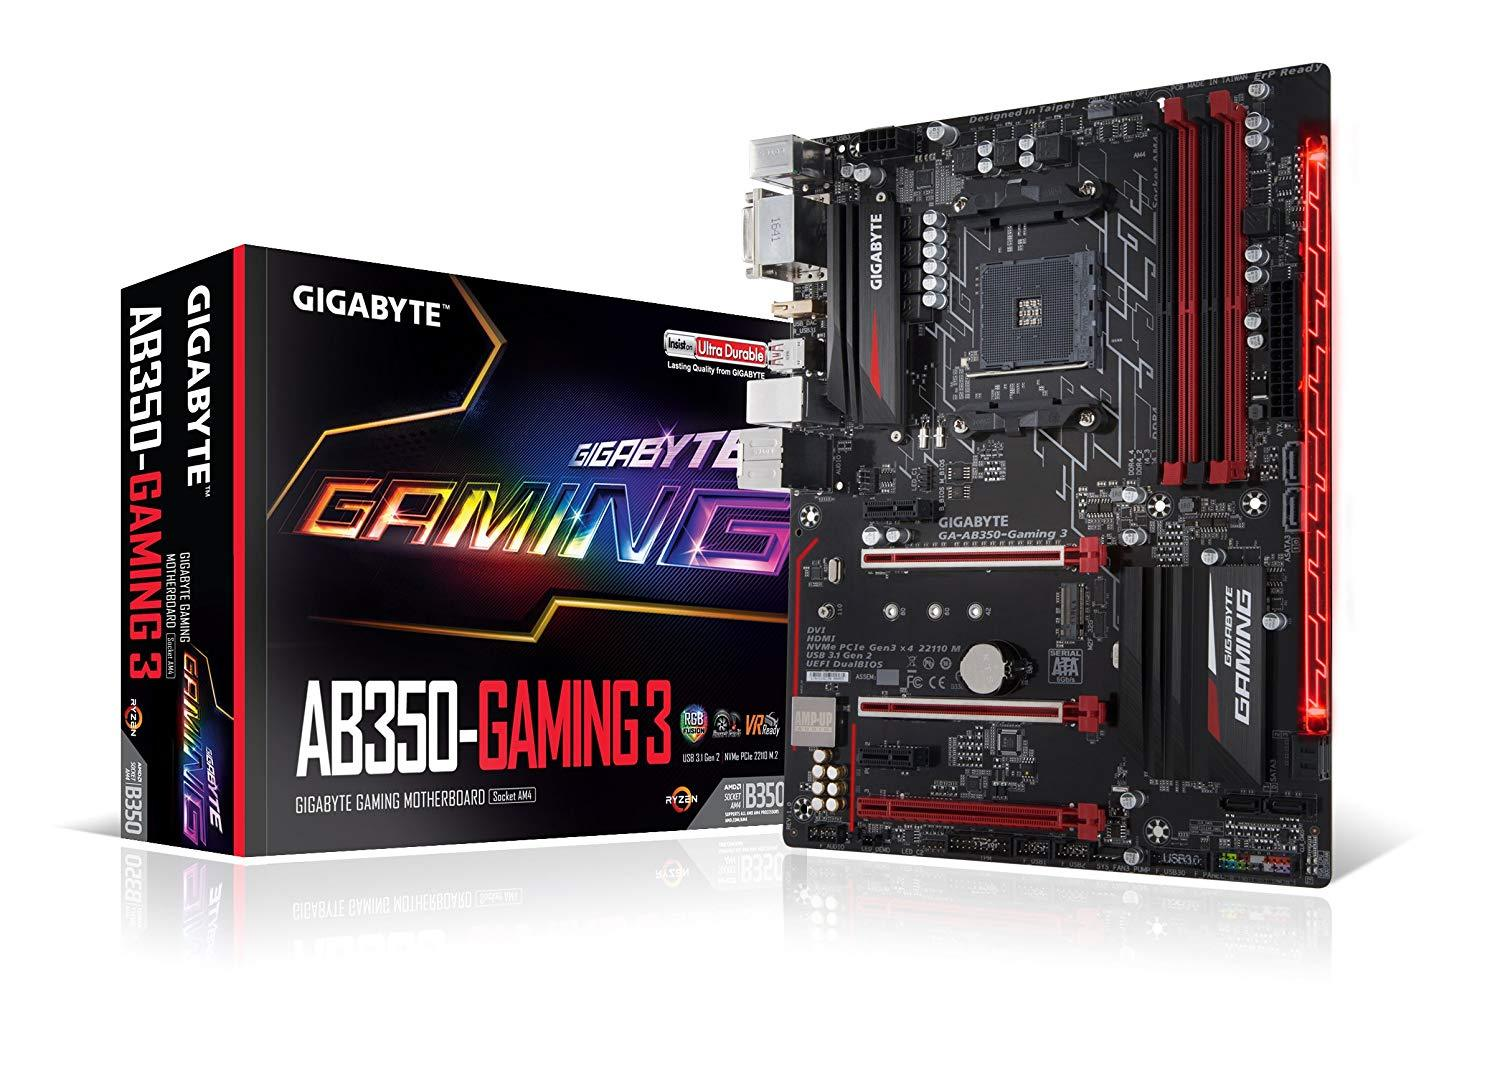 Gigabyte GA-AB350-Gaming 3 - AMD AM4 ATX Motherboard - Store 974 | ستور ٩٧٤